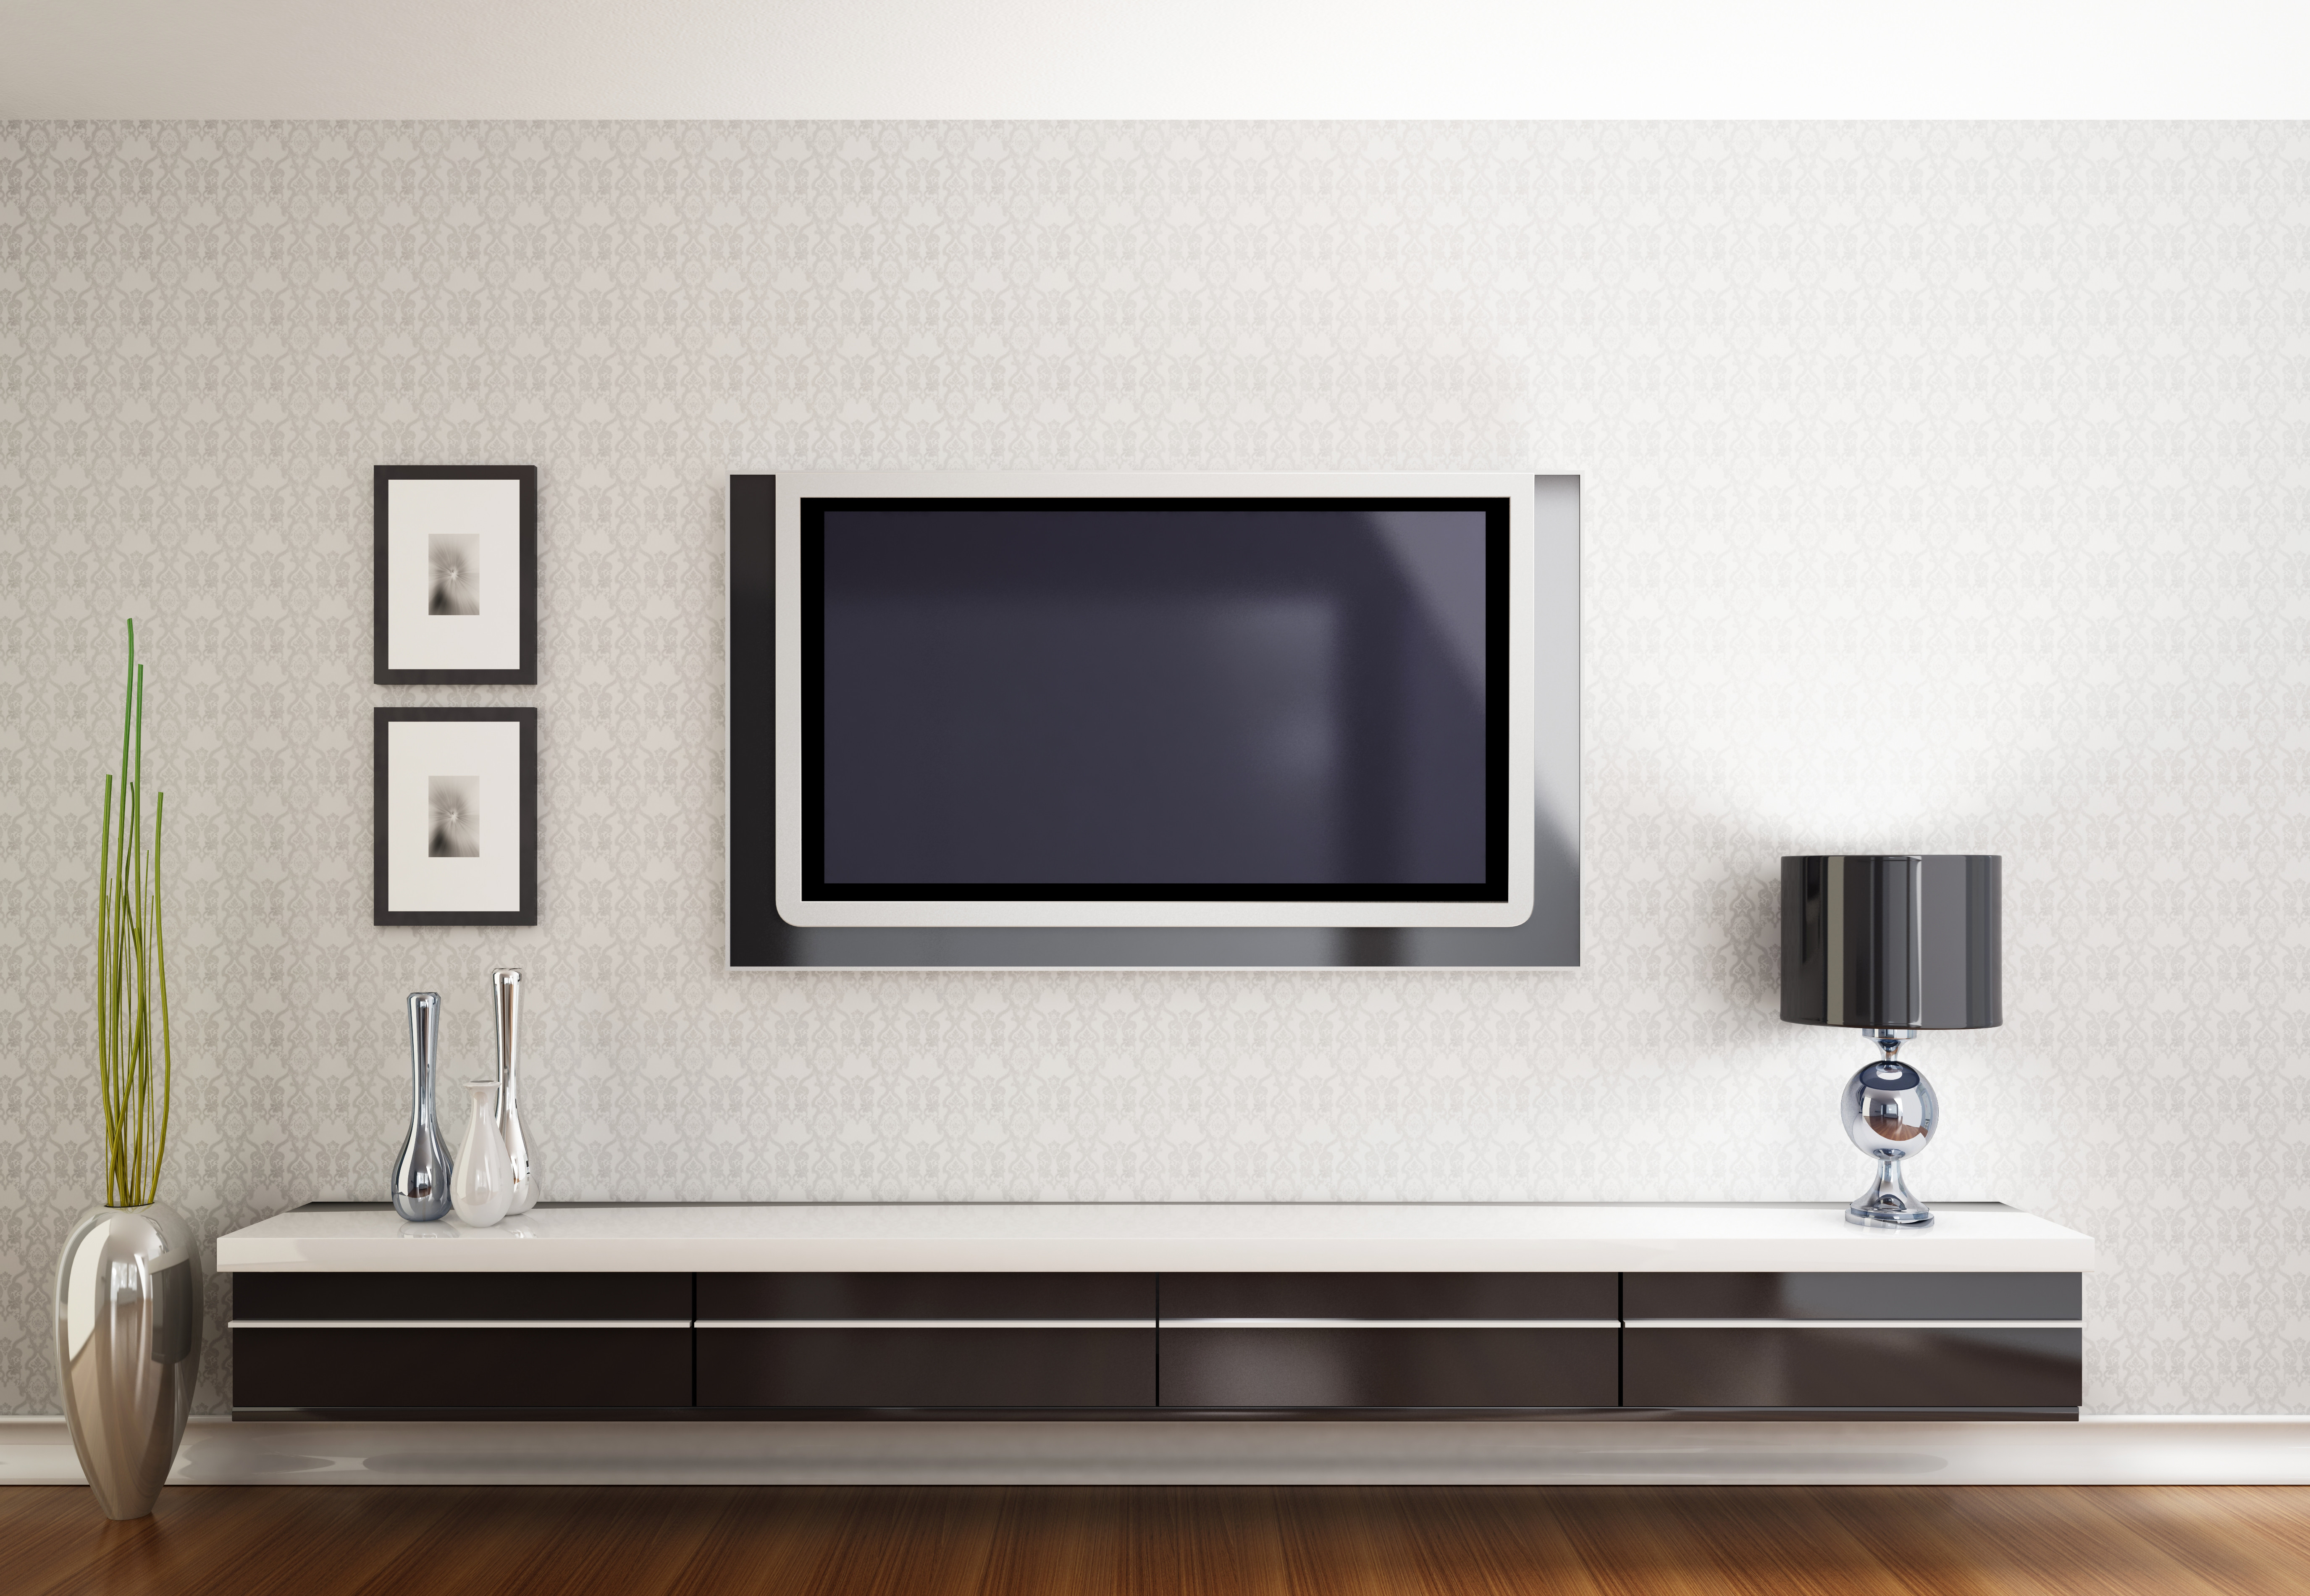 Mounting your television: What are the benefits?